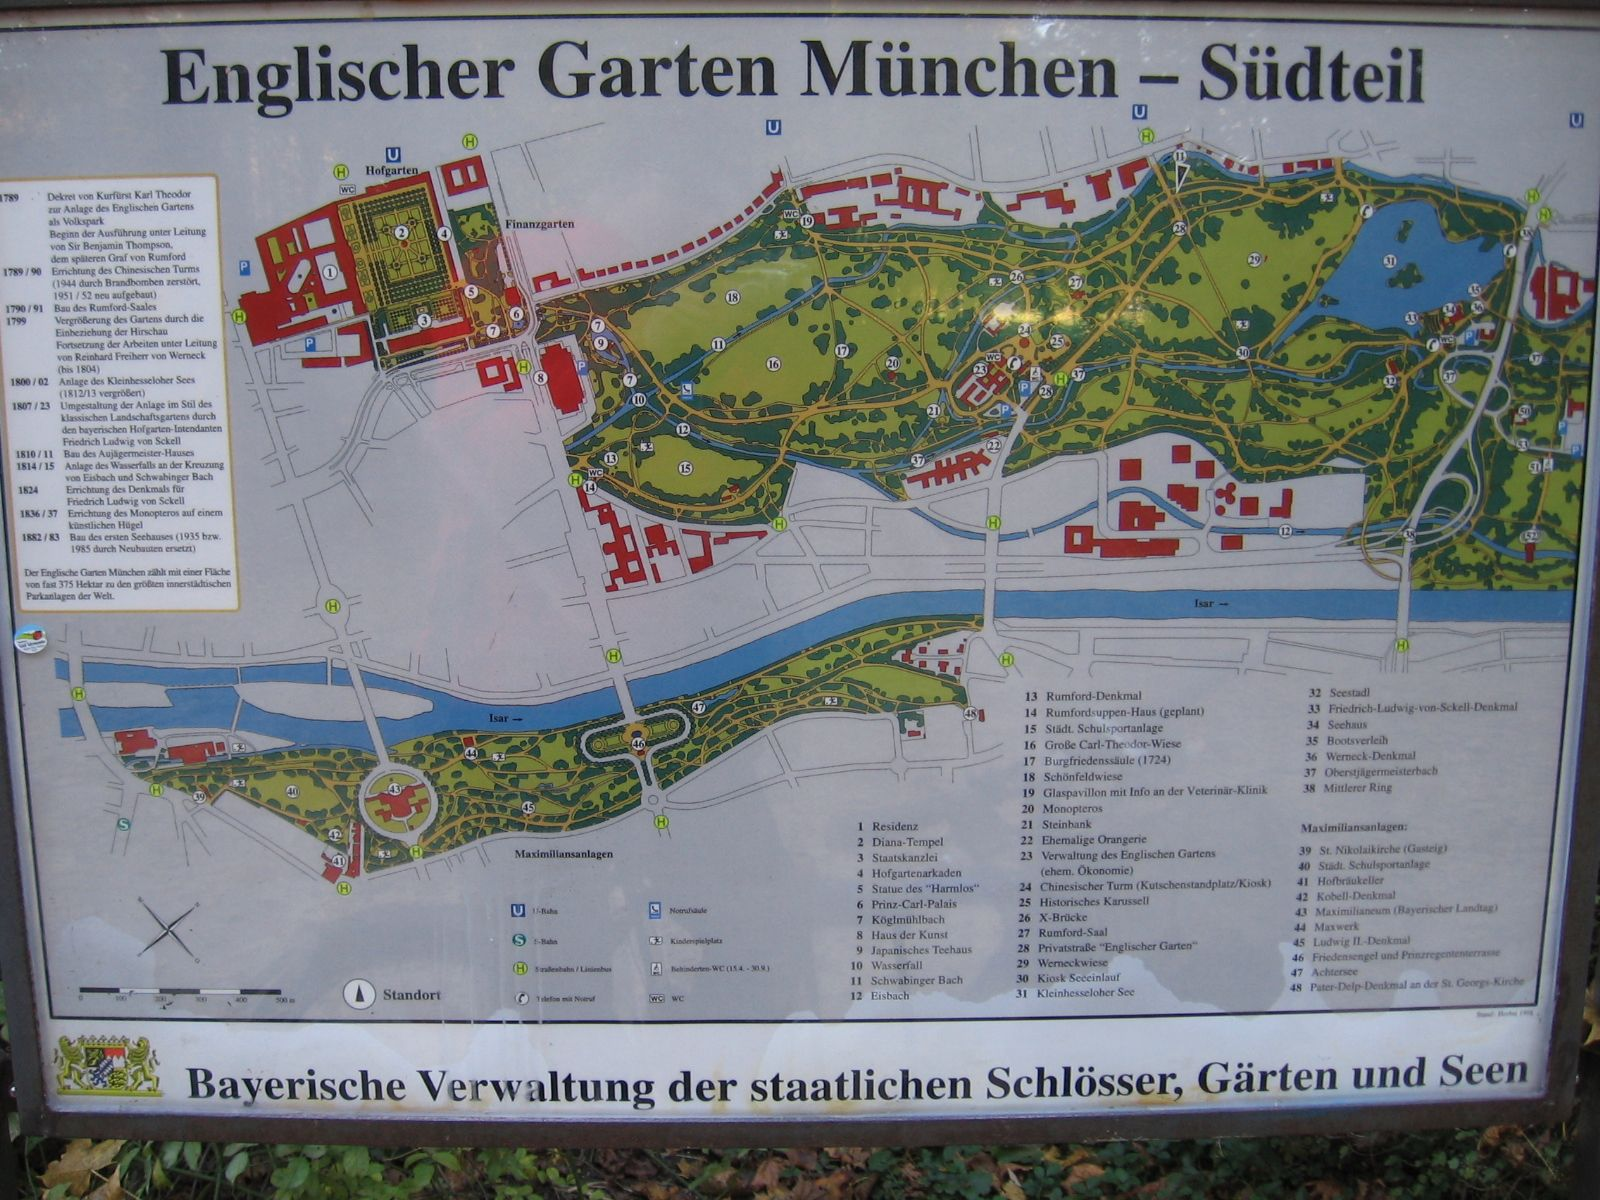 Map Of Munich S English Garden South Part Munich Travel Guide Landscape Architecture Degree Munich Travel